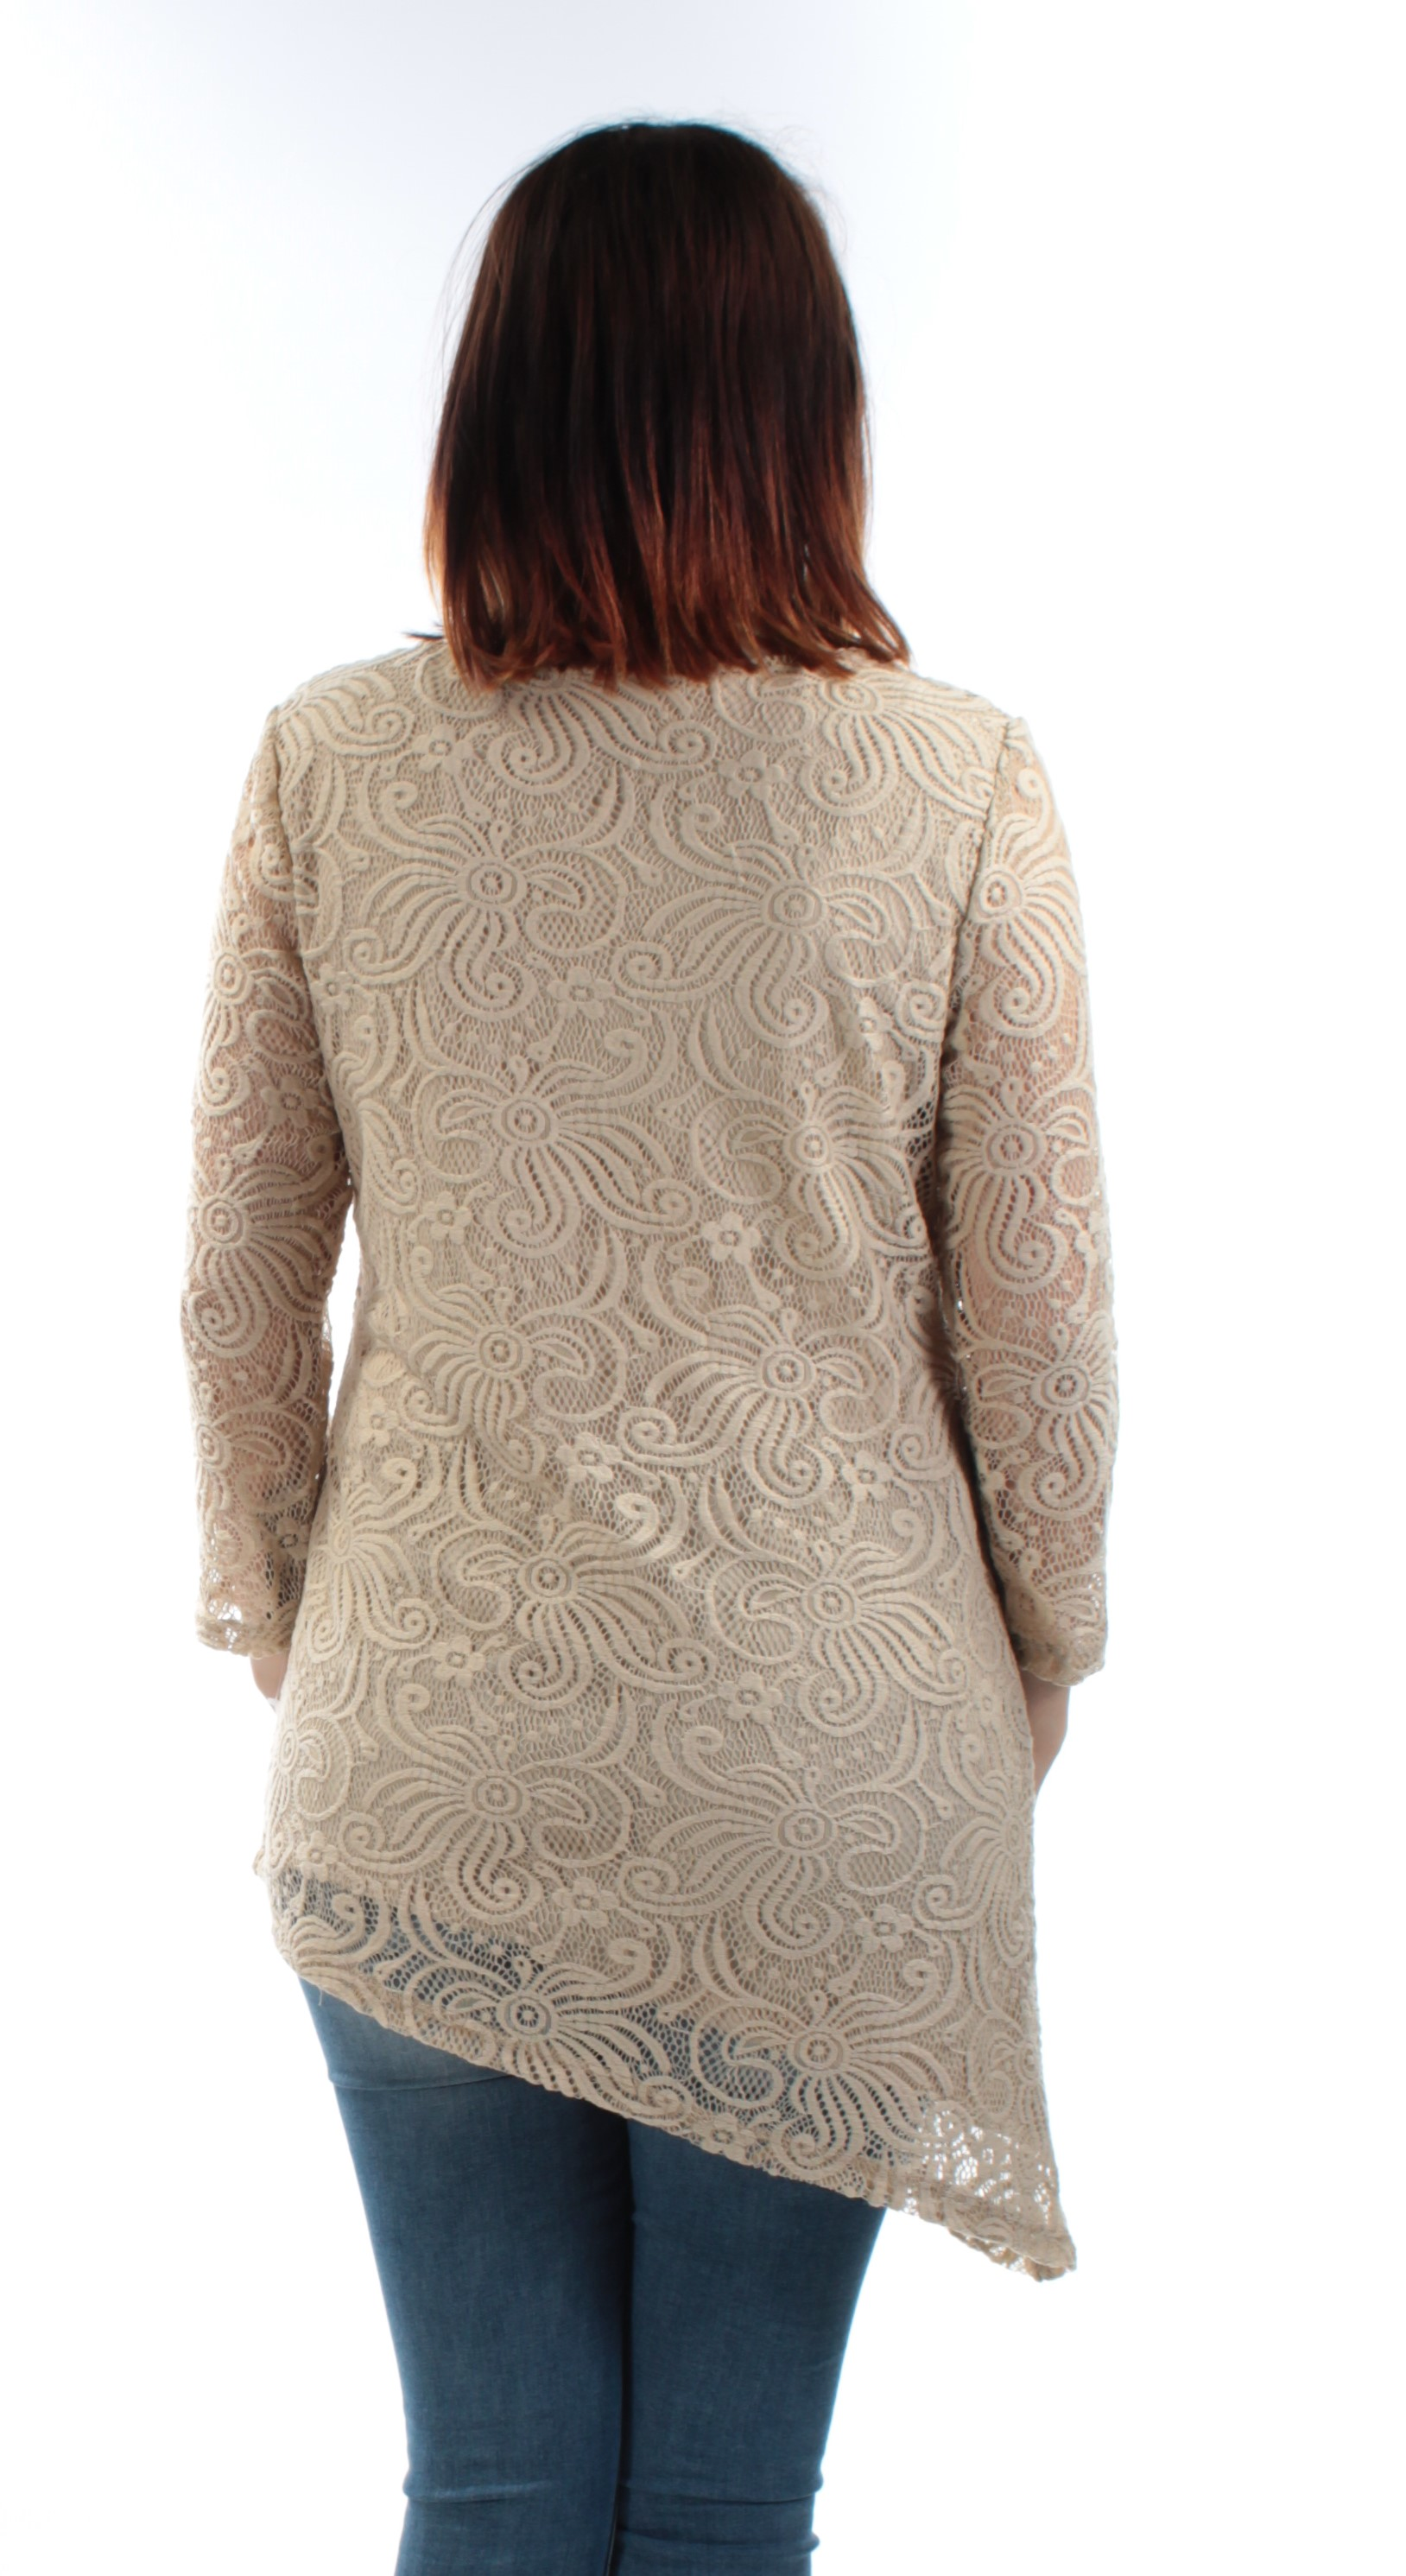 JM-COLLECTION-Womens-New-1150-Beige-Scoop-Neck-3-4-Sleeve-Lace-Casual-Top-S-B-B thumbnail 2